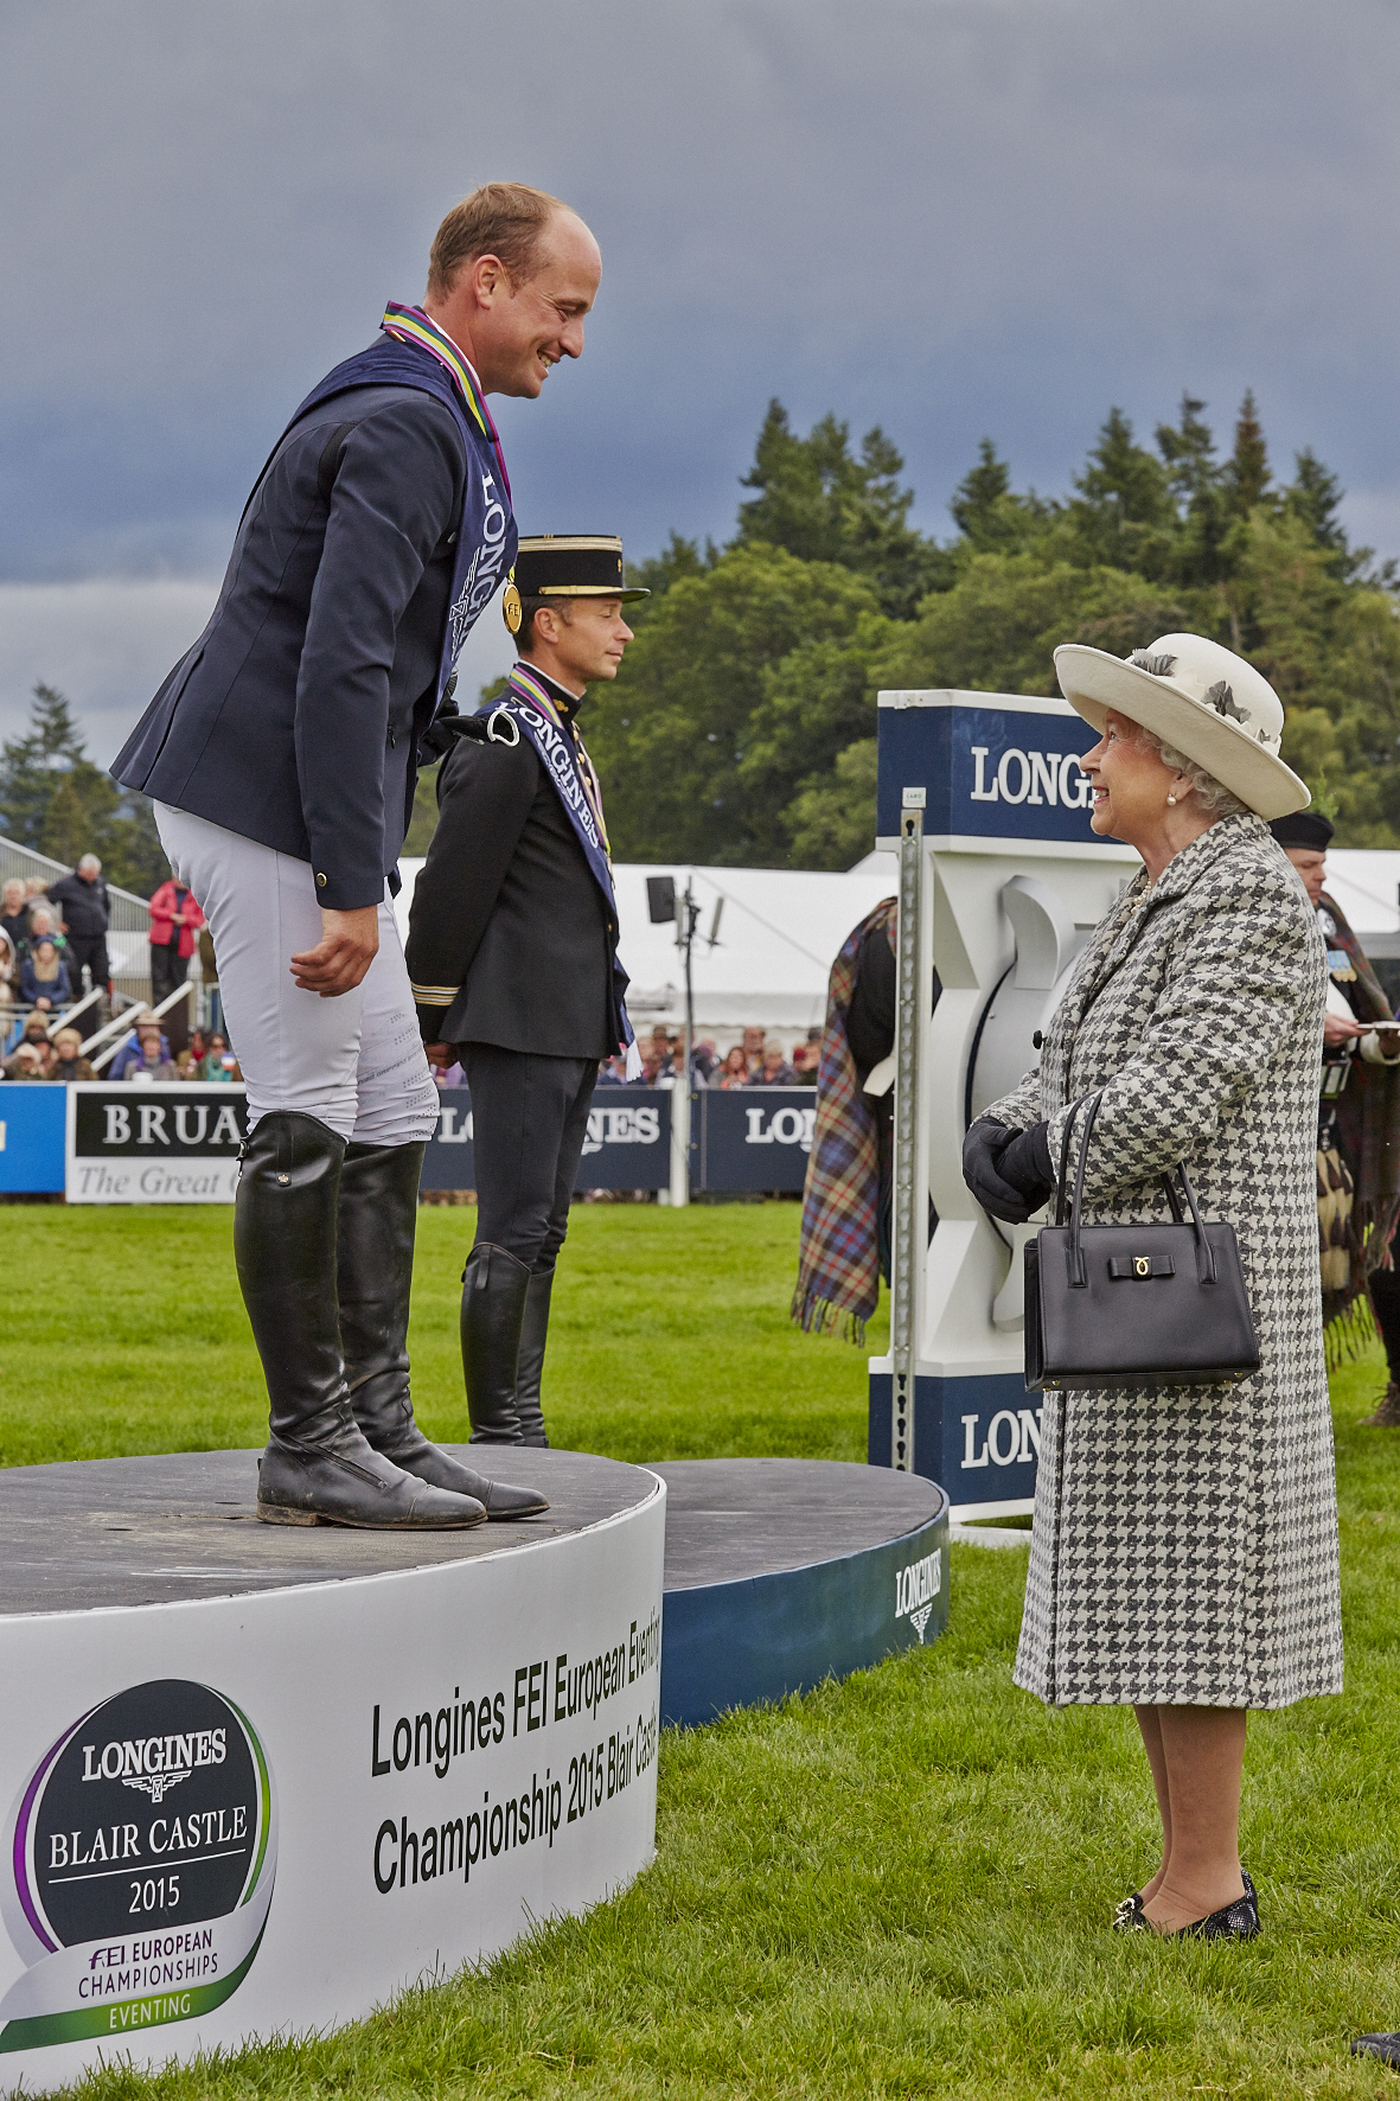 Longines Eventing Event: the Longines FEI European Eventing Championship 2015 (Blair Castle) 1